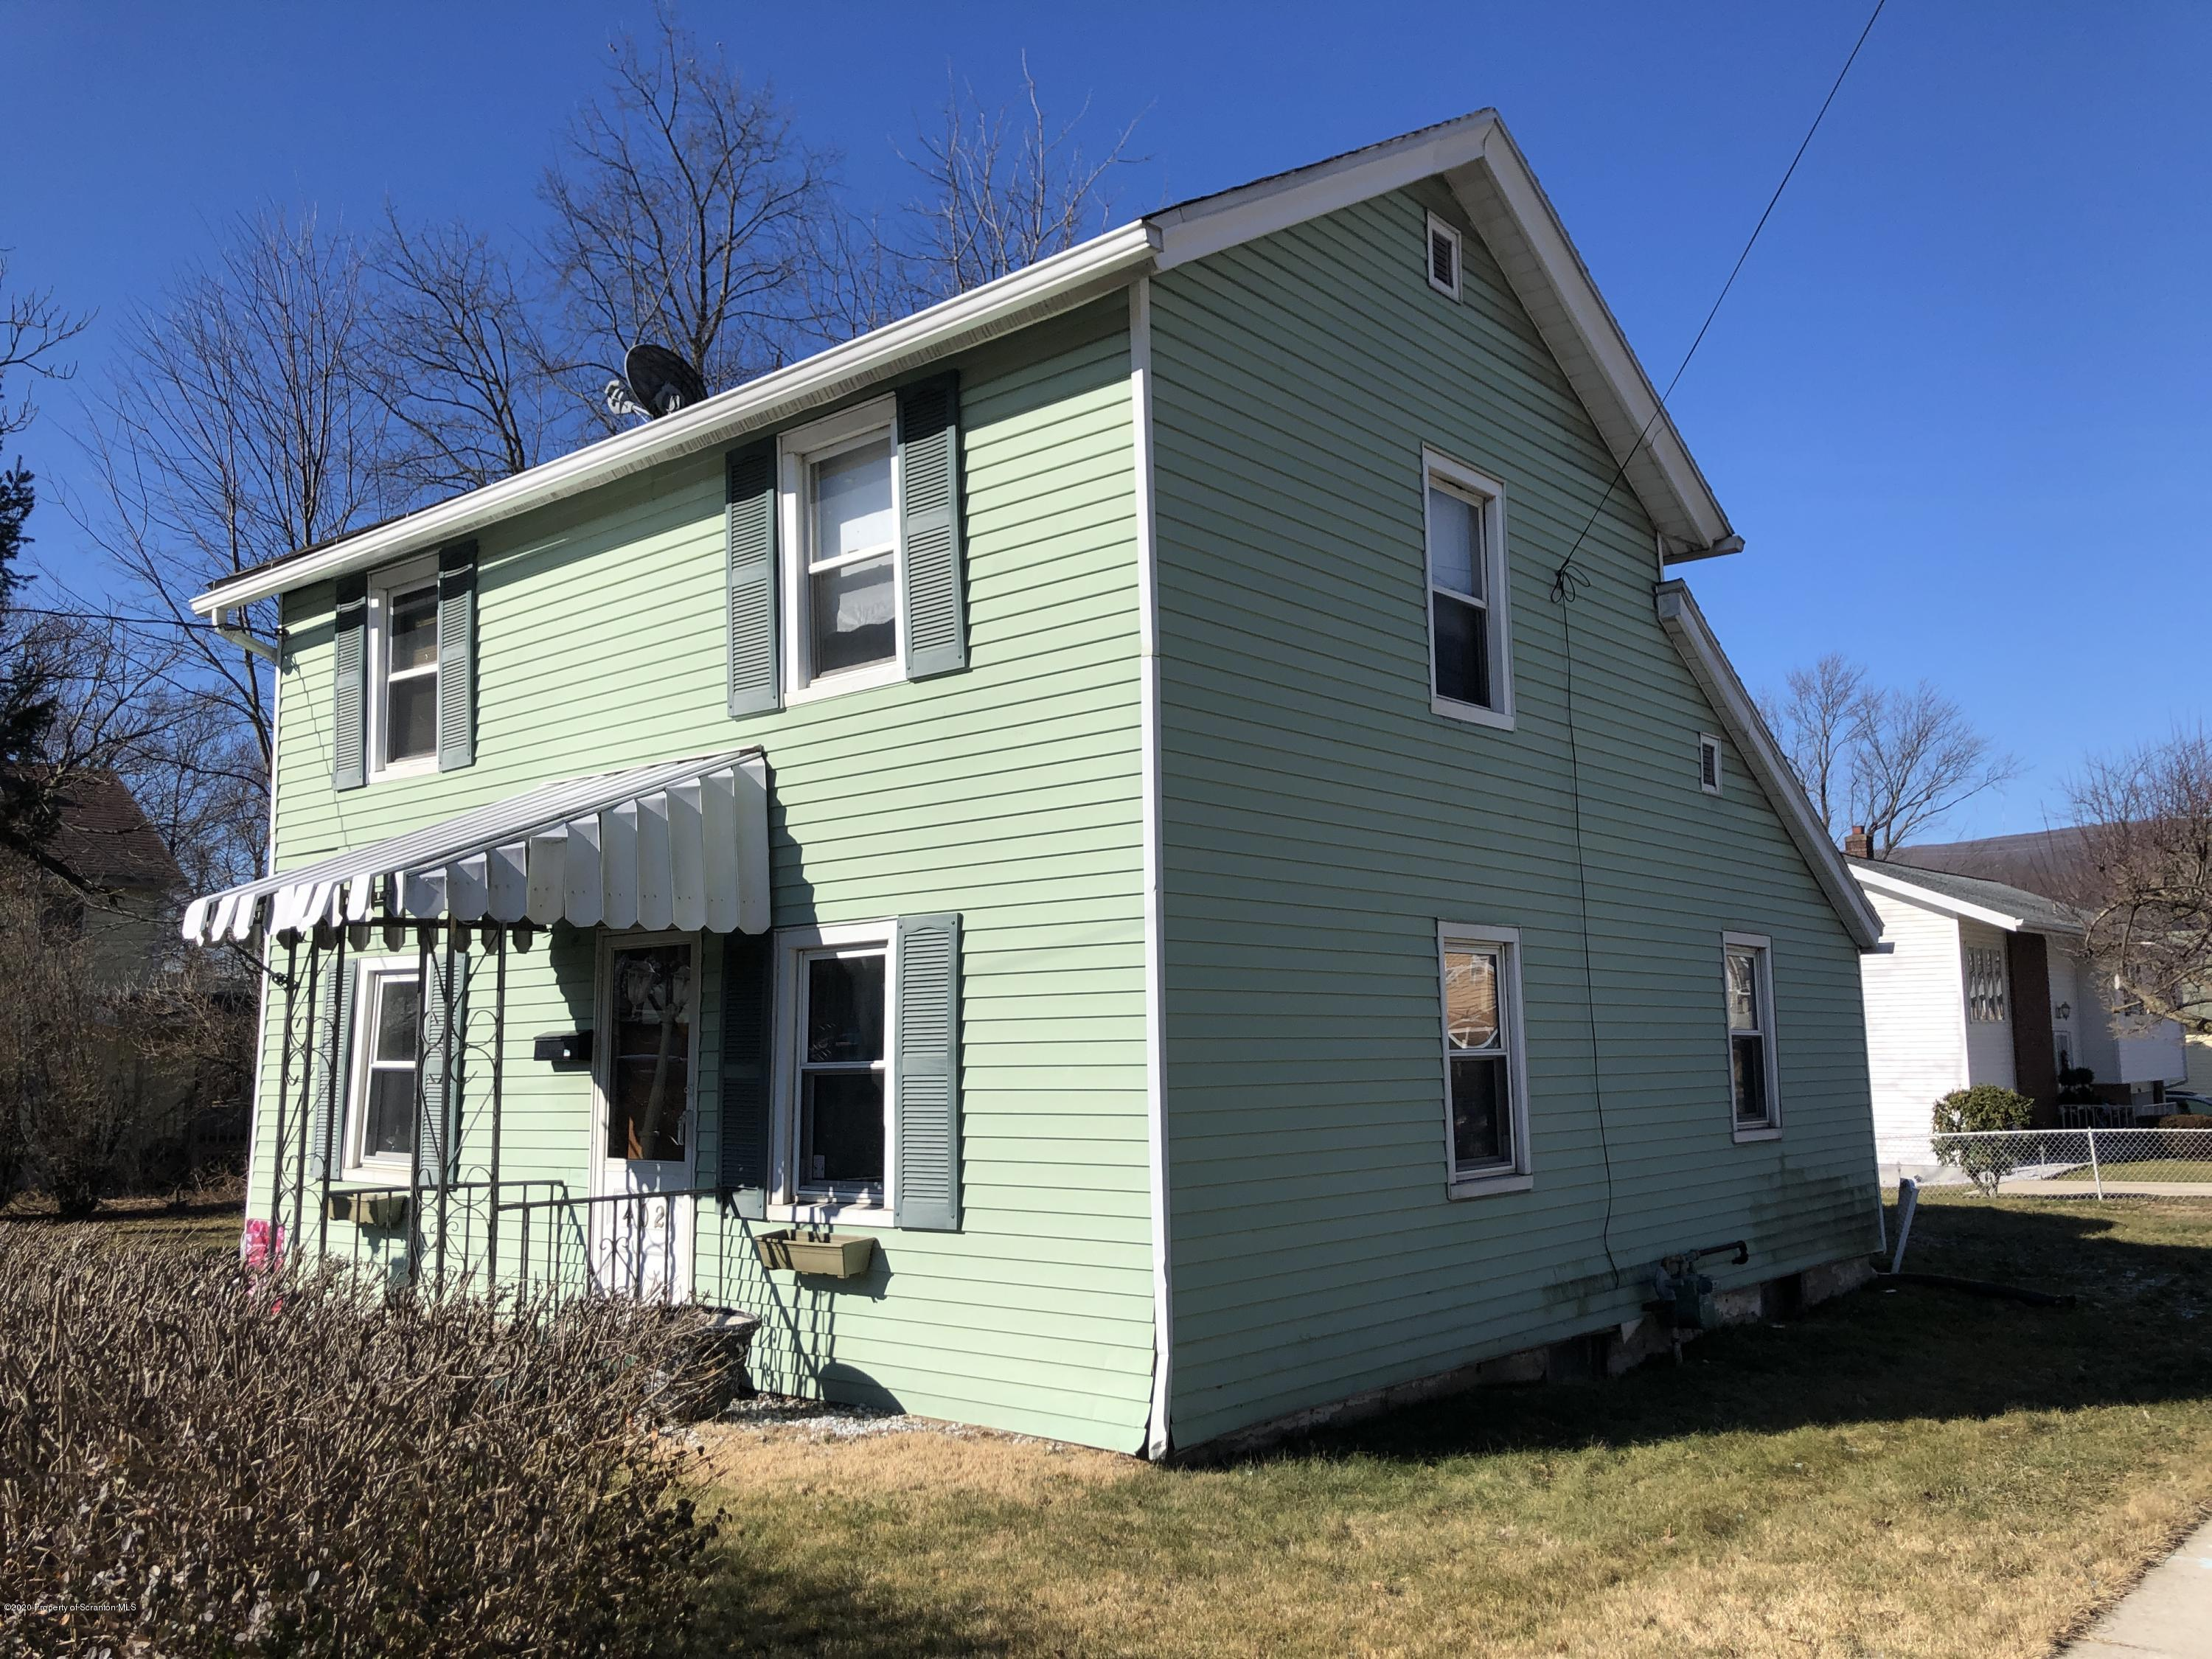 402 20th Ave, Scranton, Pennsylvania 18504, 2 Bedrooms Bedrooms, 5 Rooms Rooms,1 BathroomBathrooms,Single Family,For Sale,20th,20-666